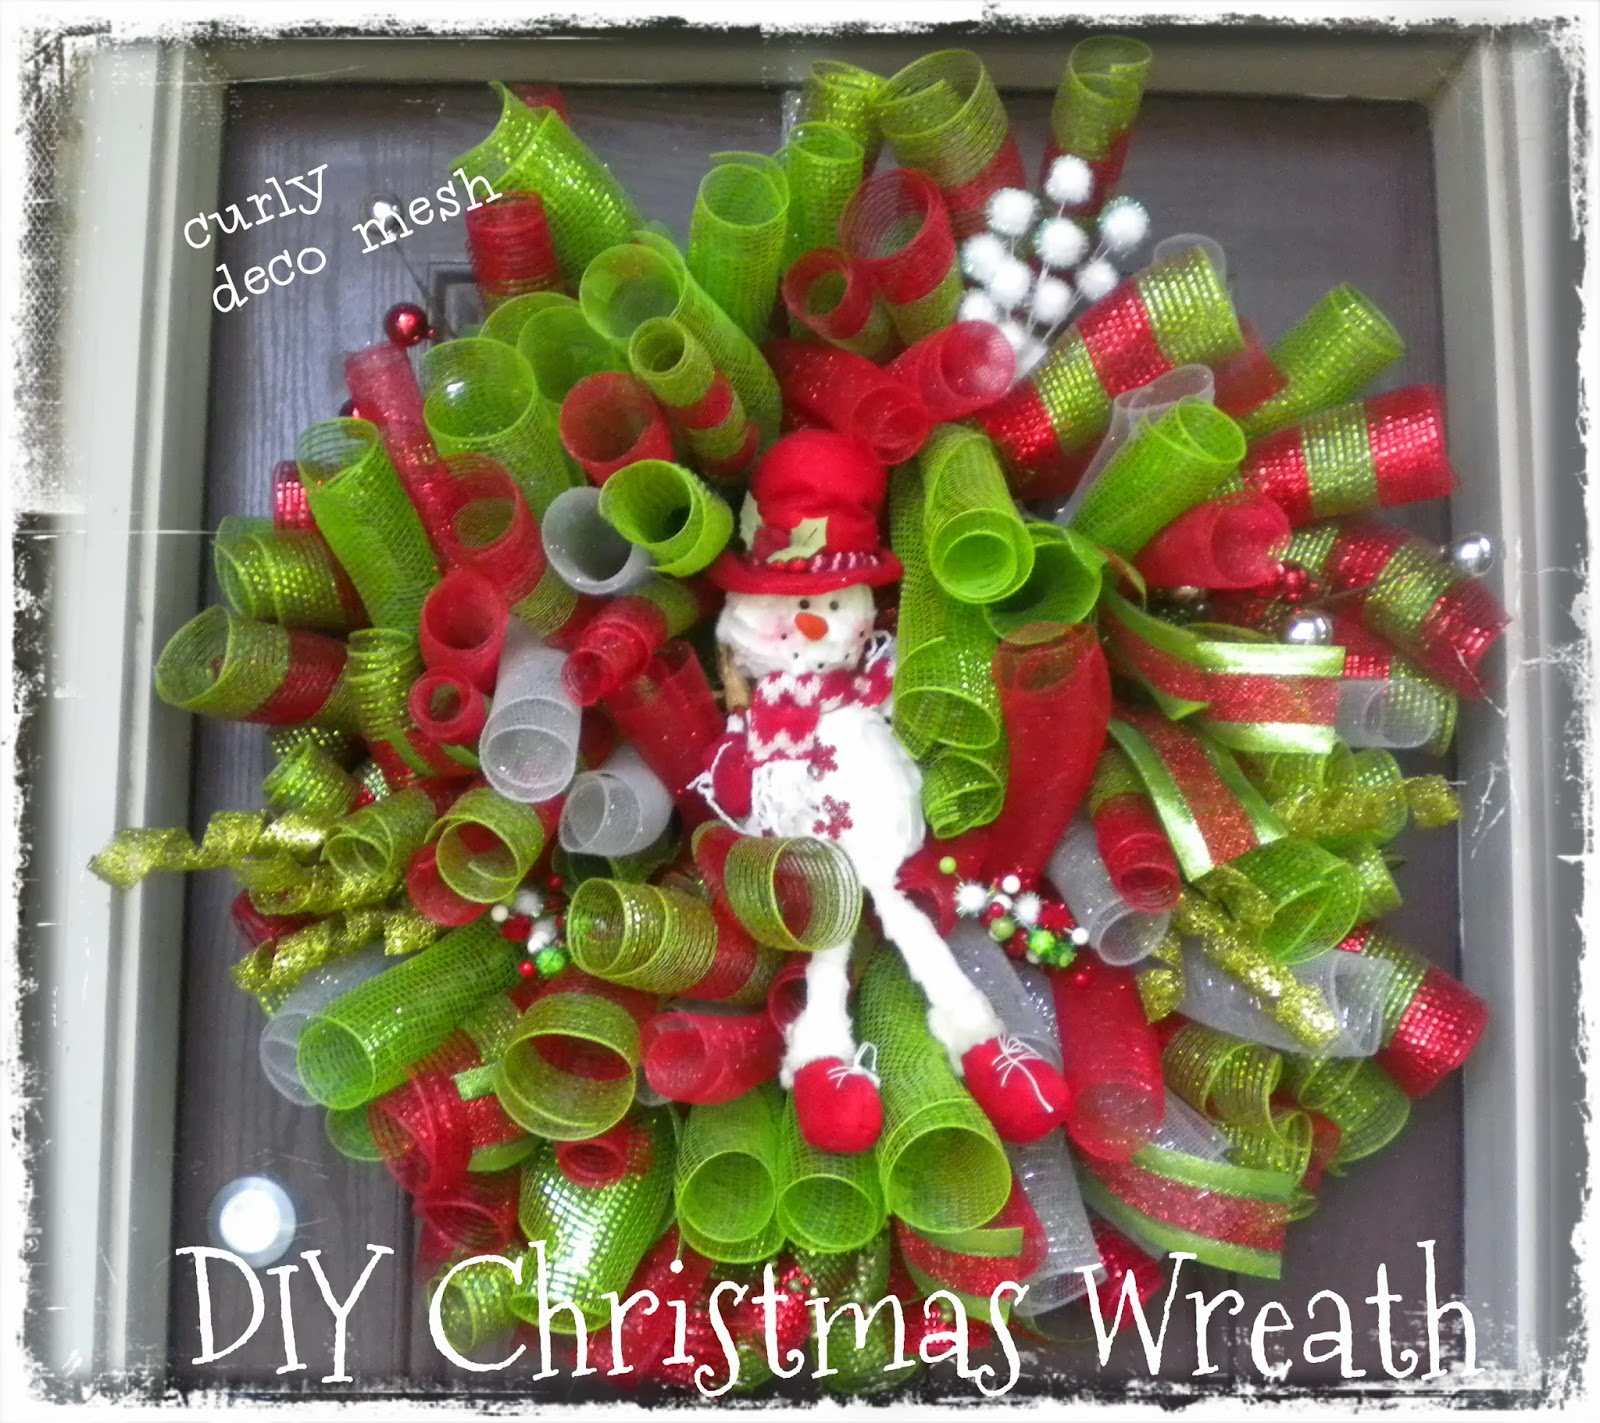 Daisies & Stars: DIY Christmas Deco Mesh Curly Snowman Wreath 2013